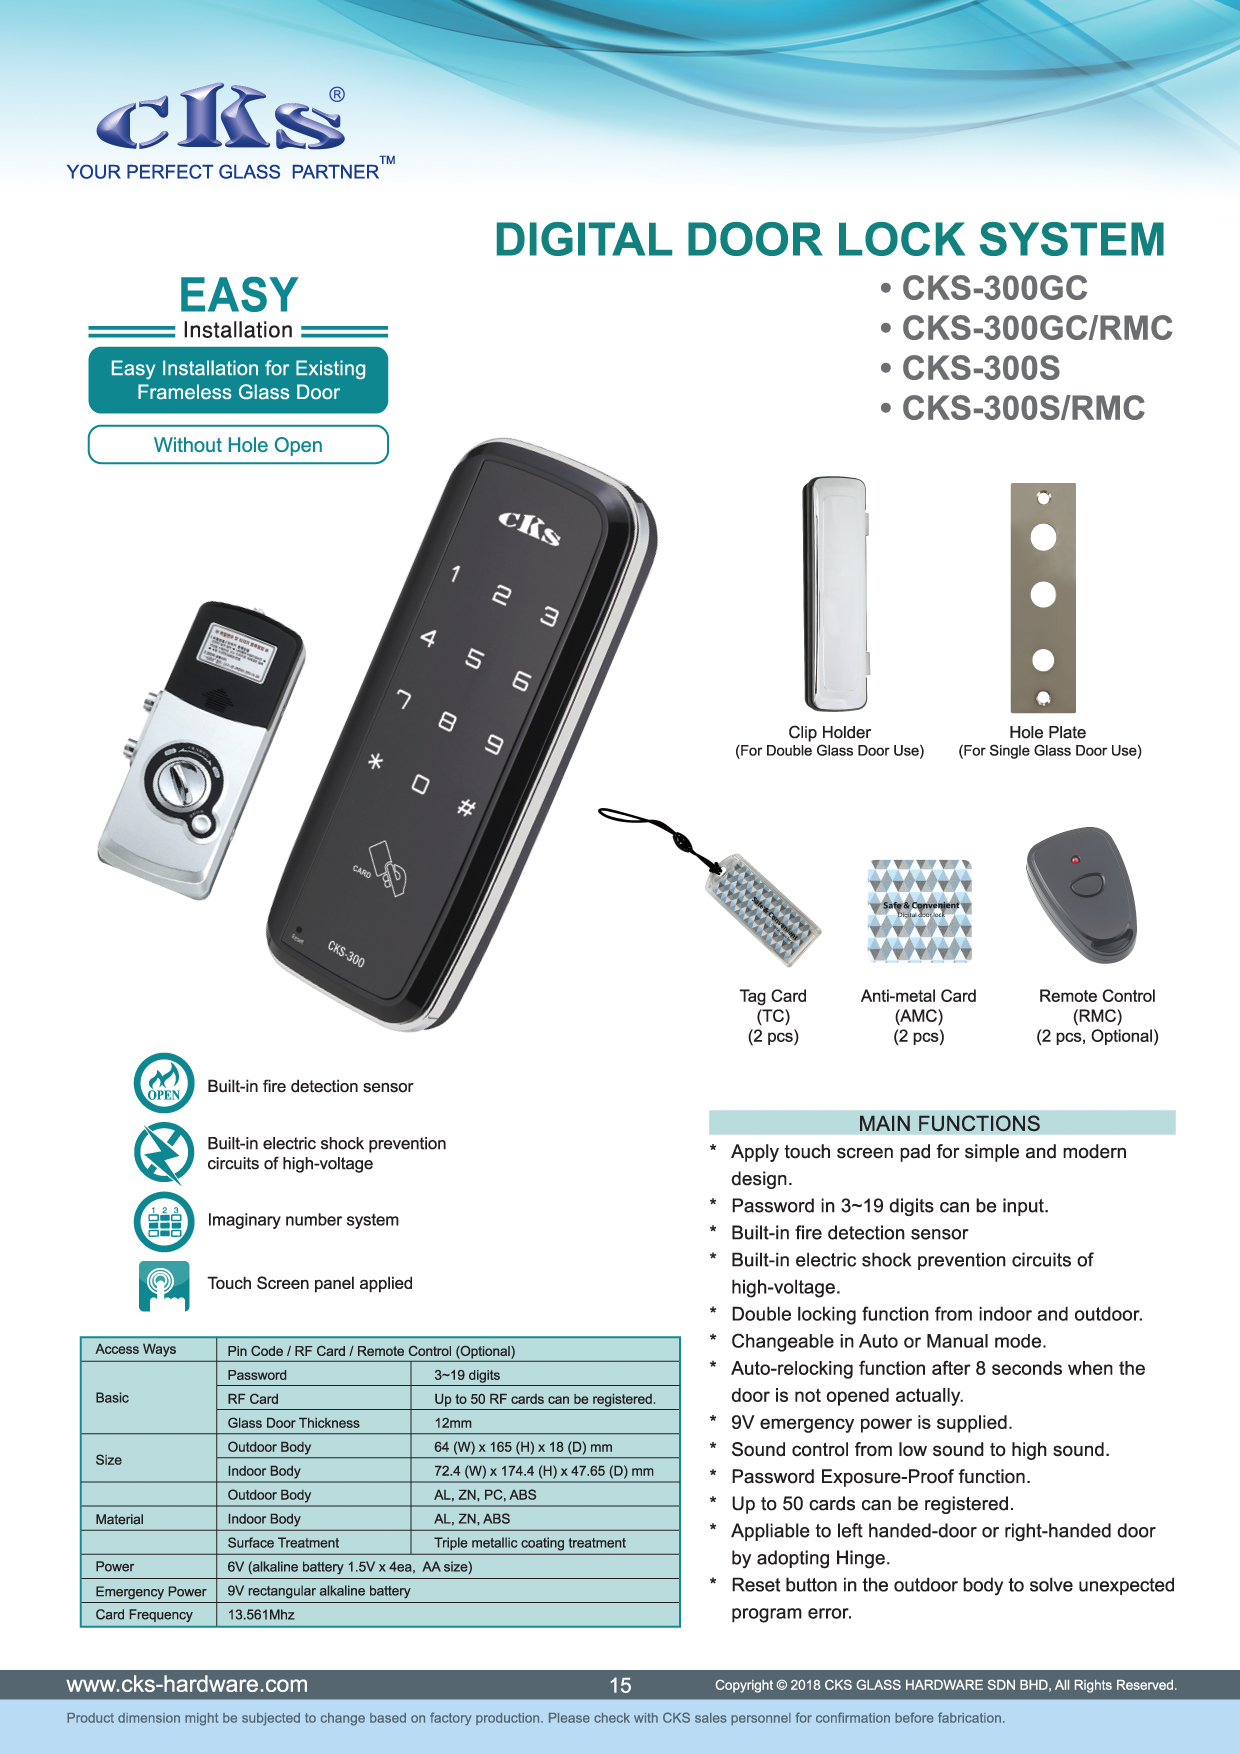 Cks Glass Hardware Digital Door Lock System Visitor Counter 300s Rmc 3 Ways With Remote Control Alum Frame Timber Thickness 35 50mm